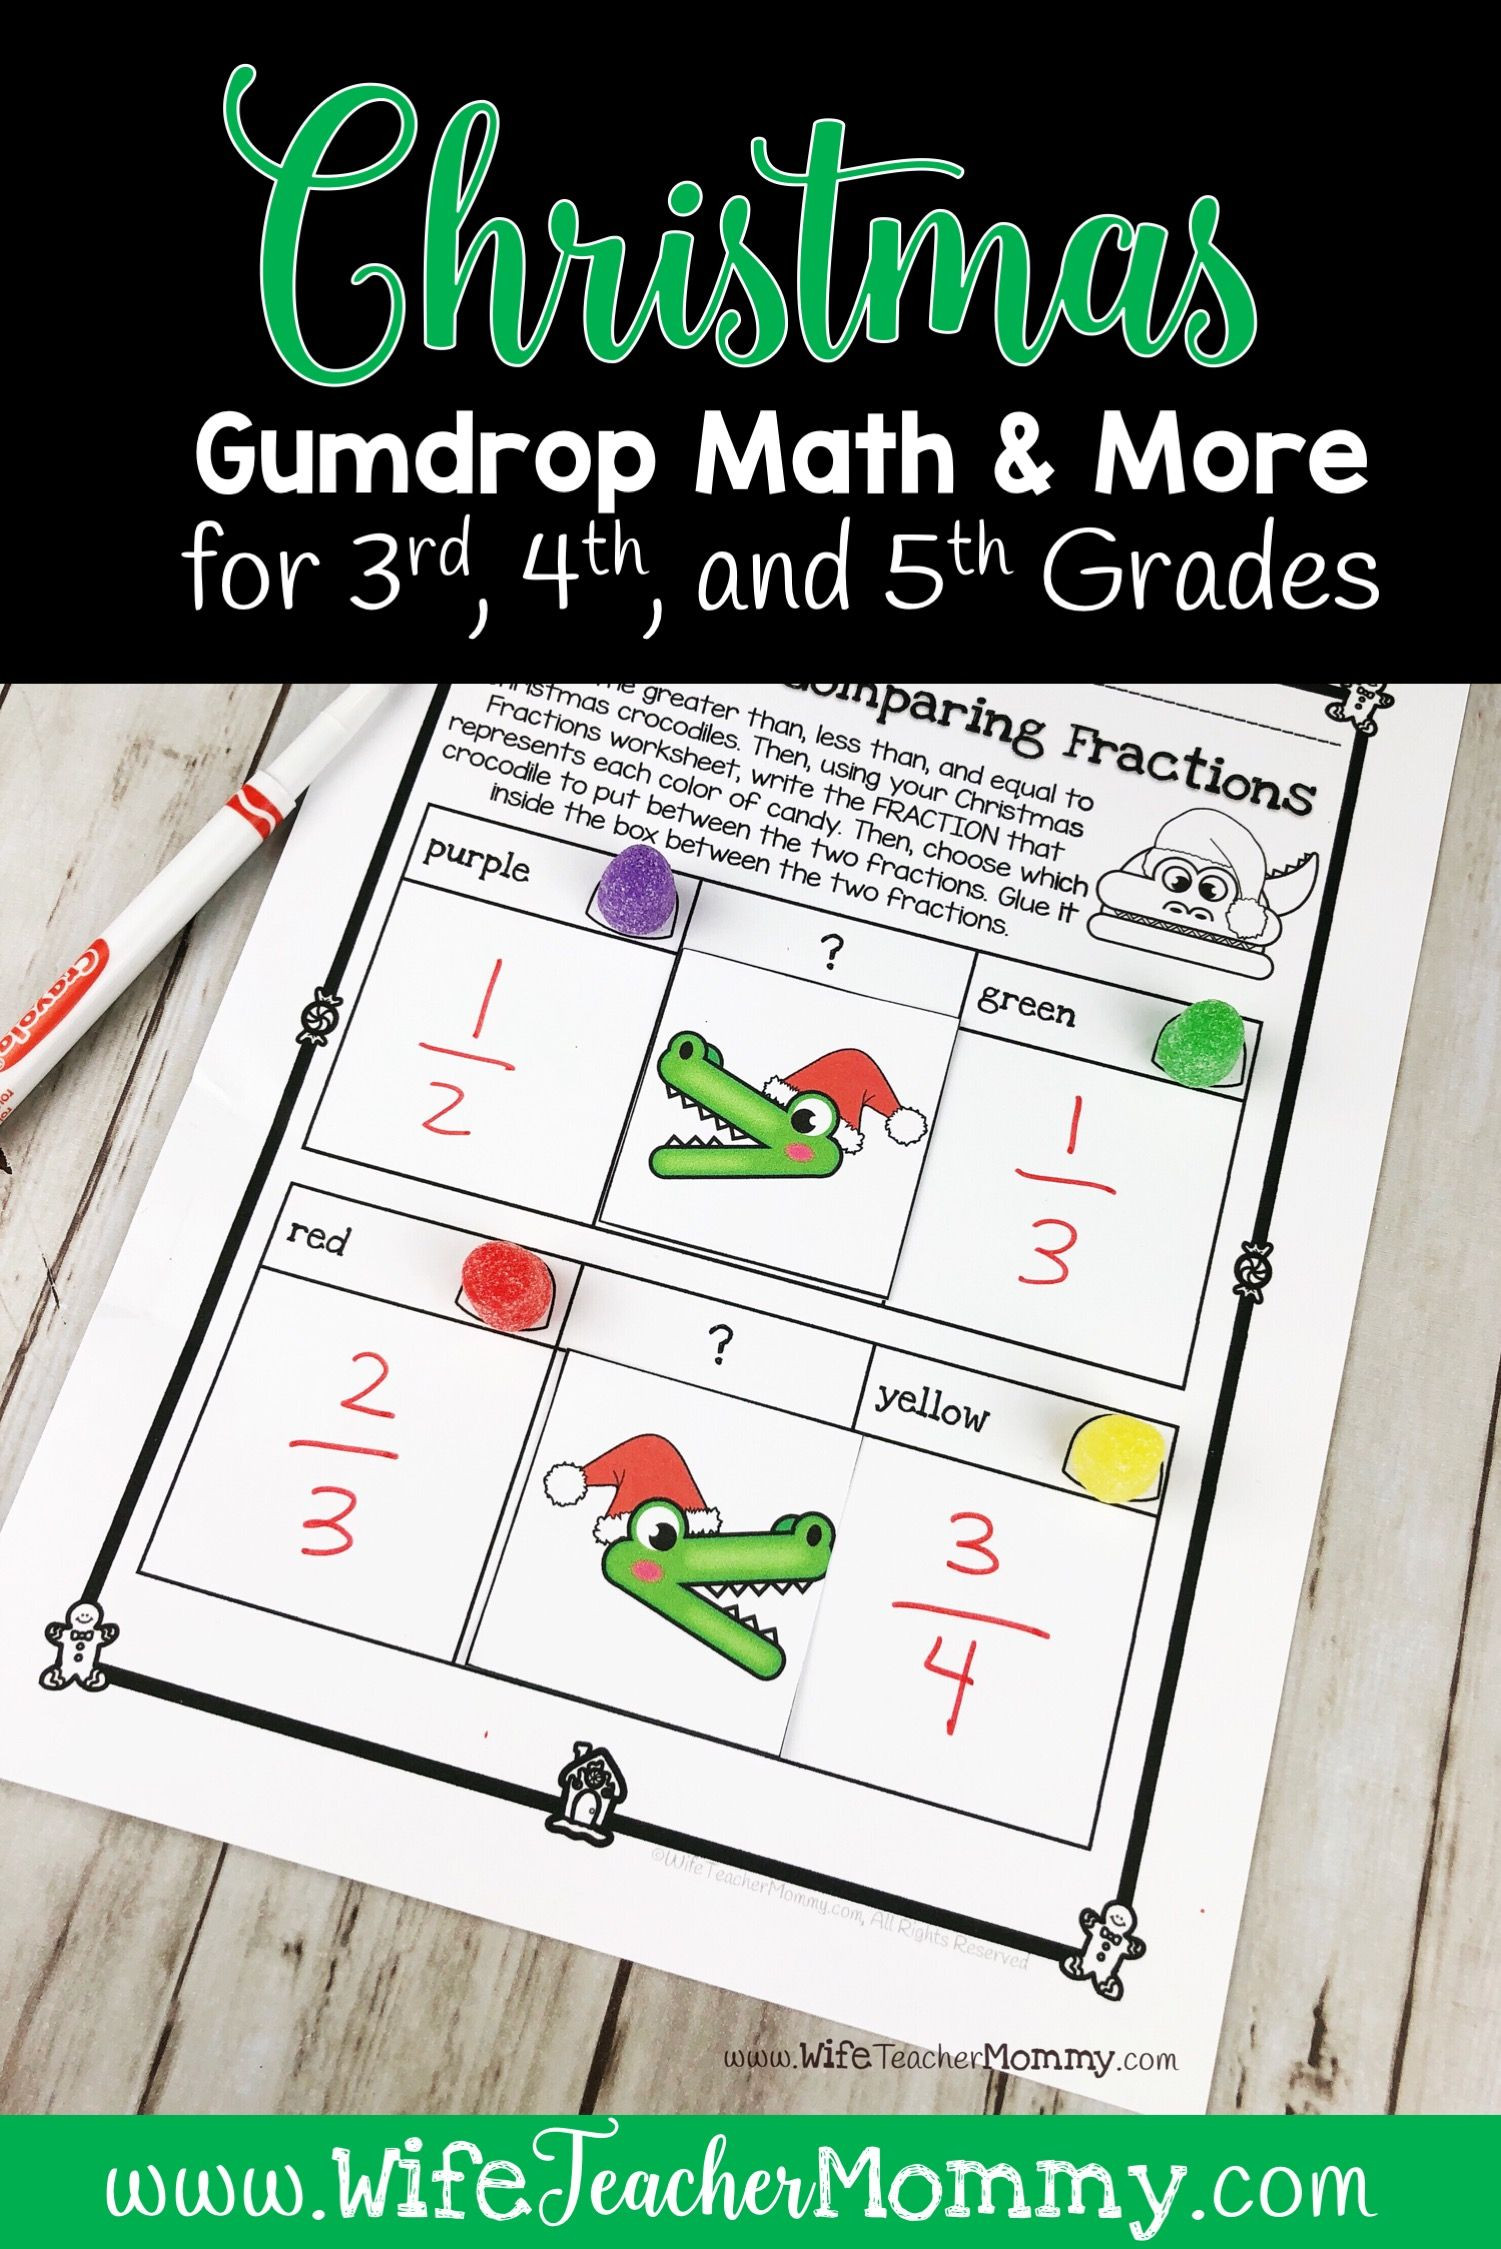 Christmas Worksheets 5th Grade Christmas Gumdrop Math Activities & More for 3rd 4th 5th